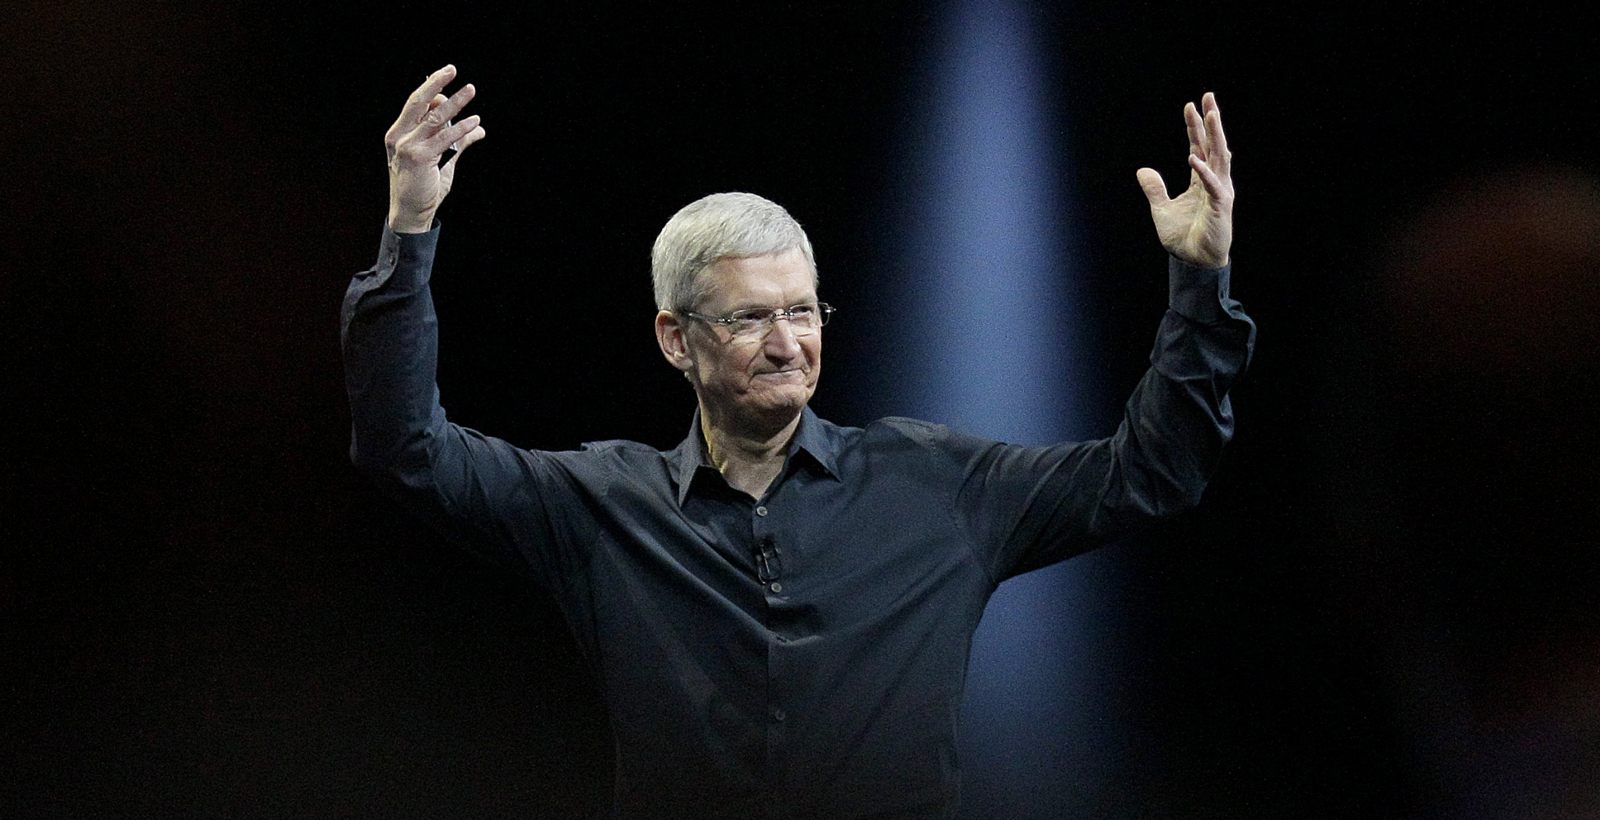 Tim Cook, version chef d'orchestre.